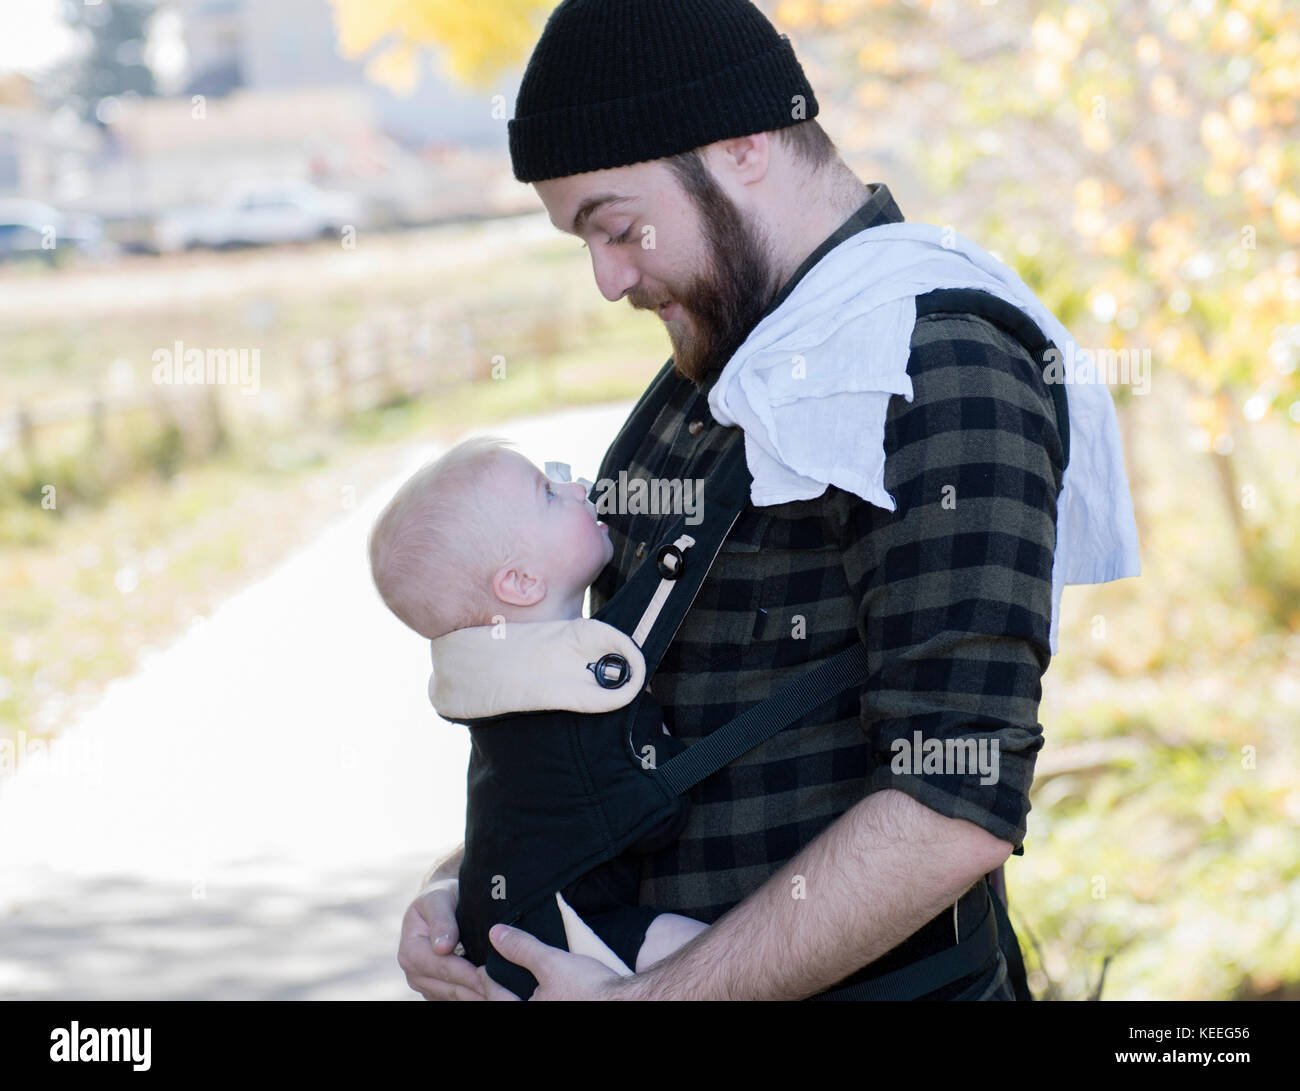 Millennial Dad with Baby in Carrier Outside Walking - Stock Image